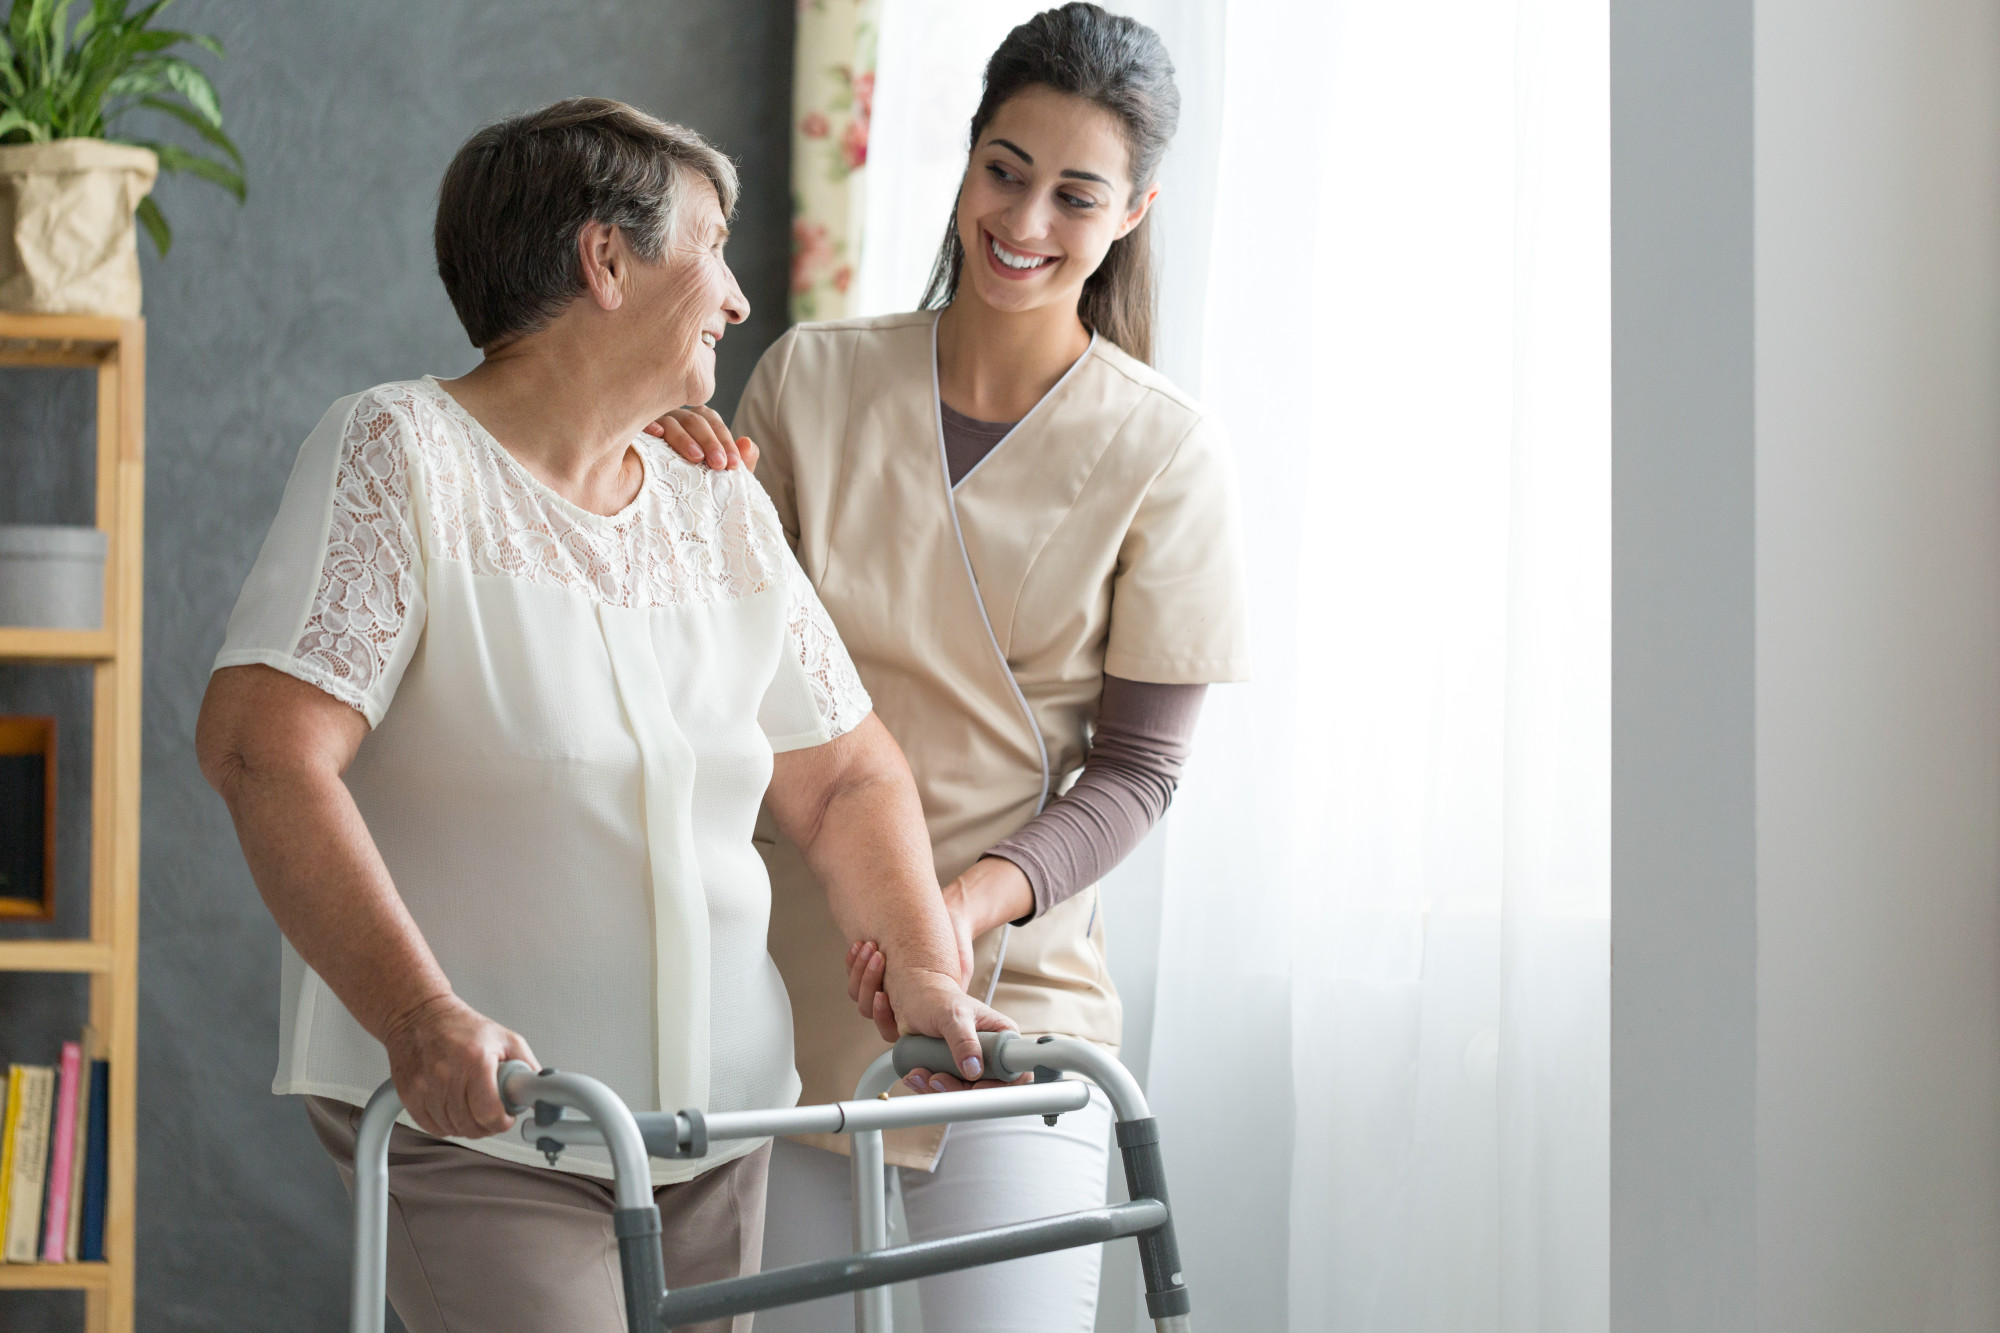 An Elderly's Guide to Surviving Hip Replacement Surgery